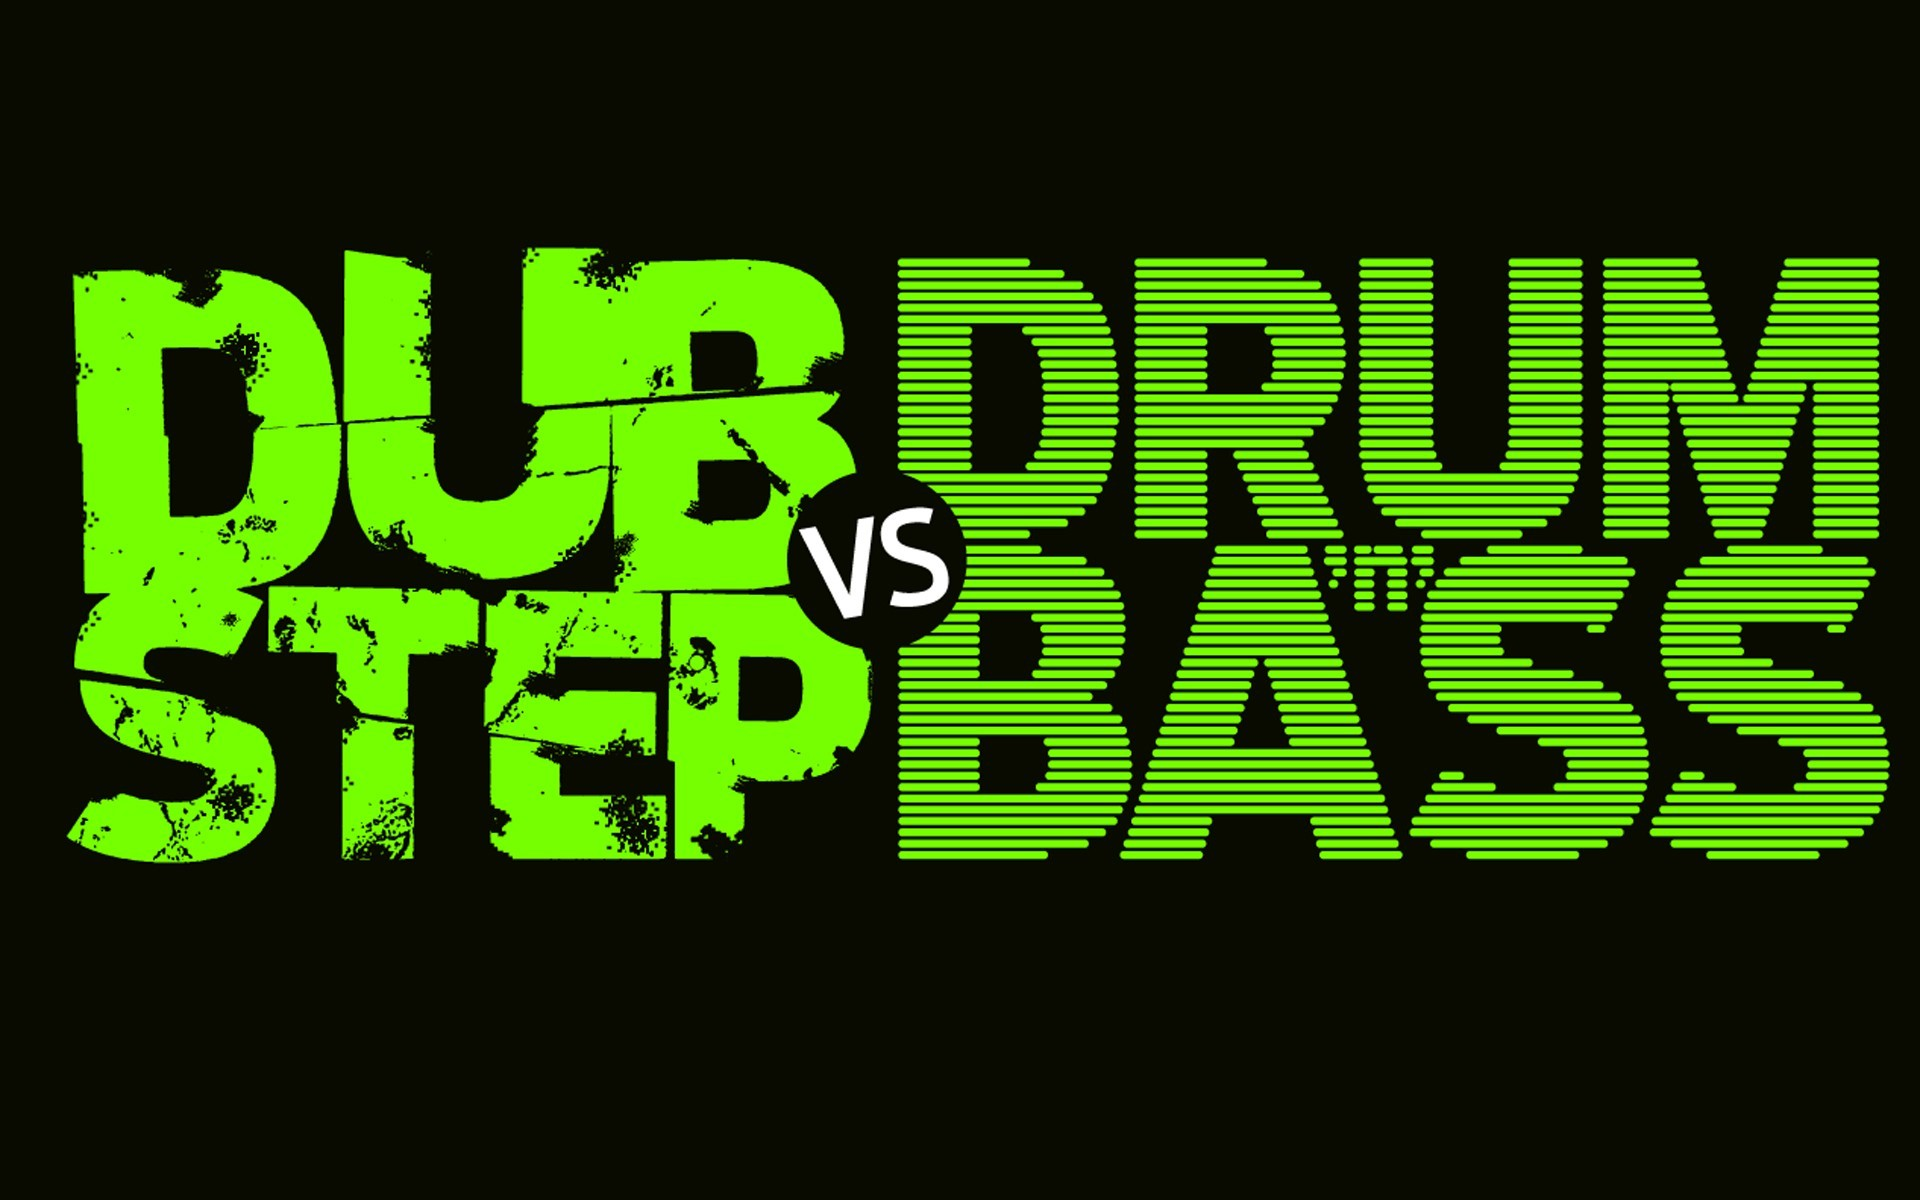 Drum and bass dubstep text typography wallpaper allwallpaper drum and bass dubstep text typography wallpaper voltagebd Gallery